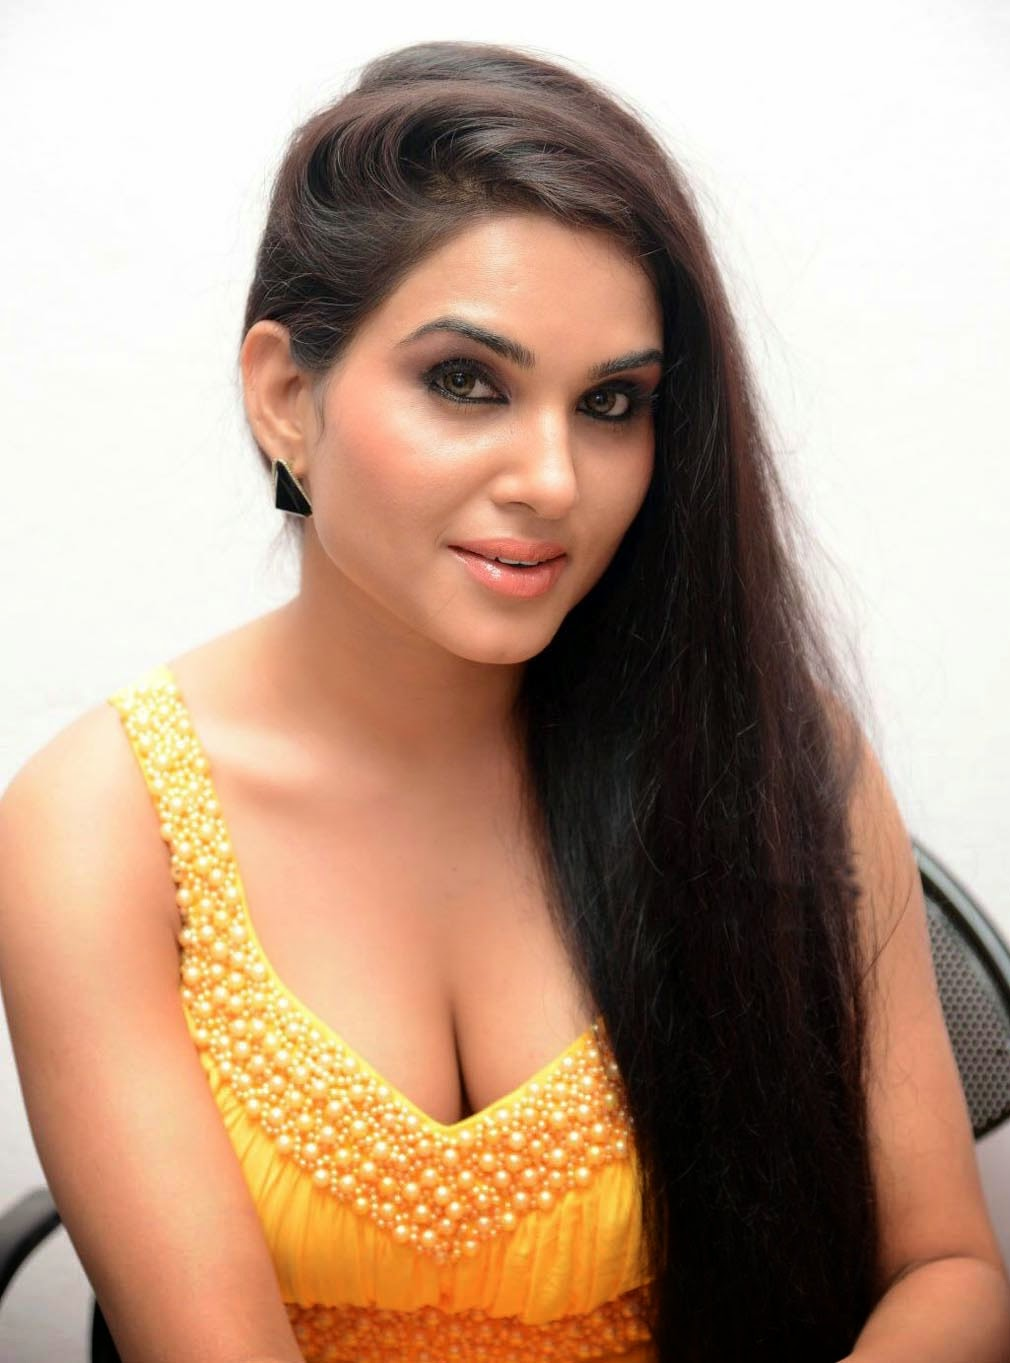 kavya singh latest hot cleavage pics